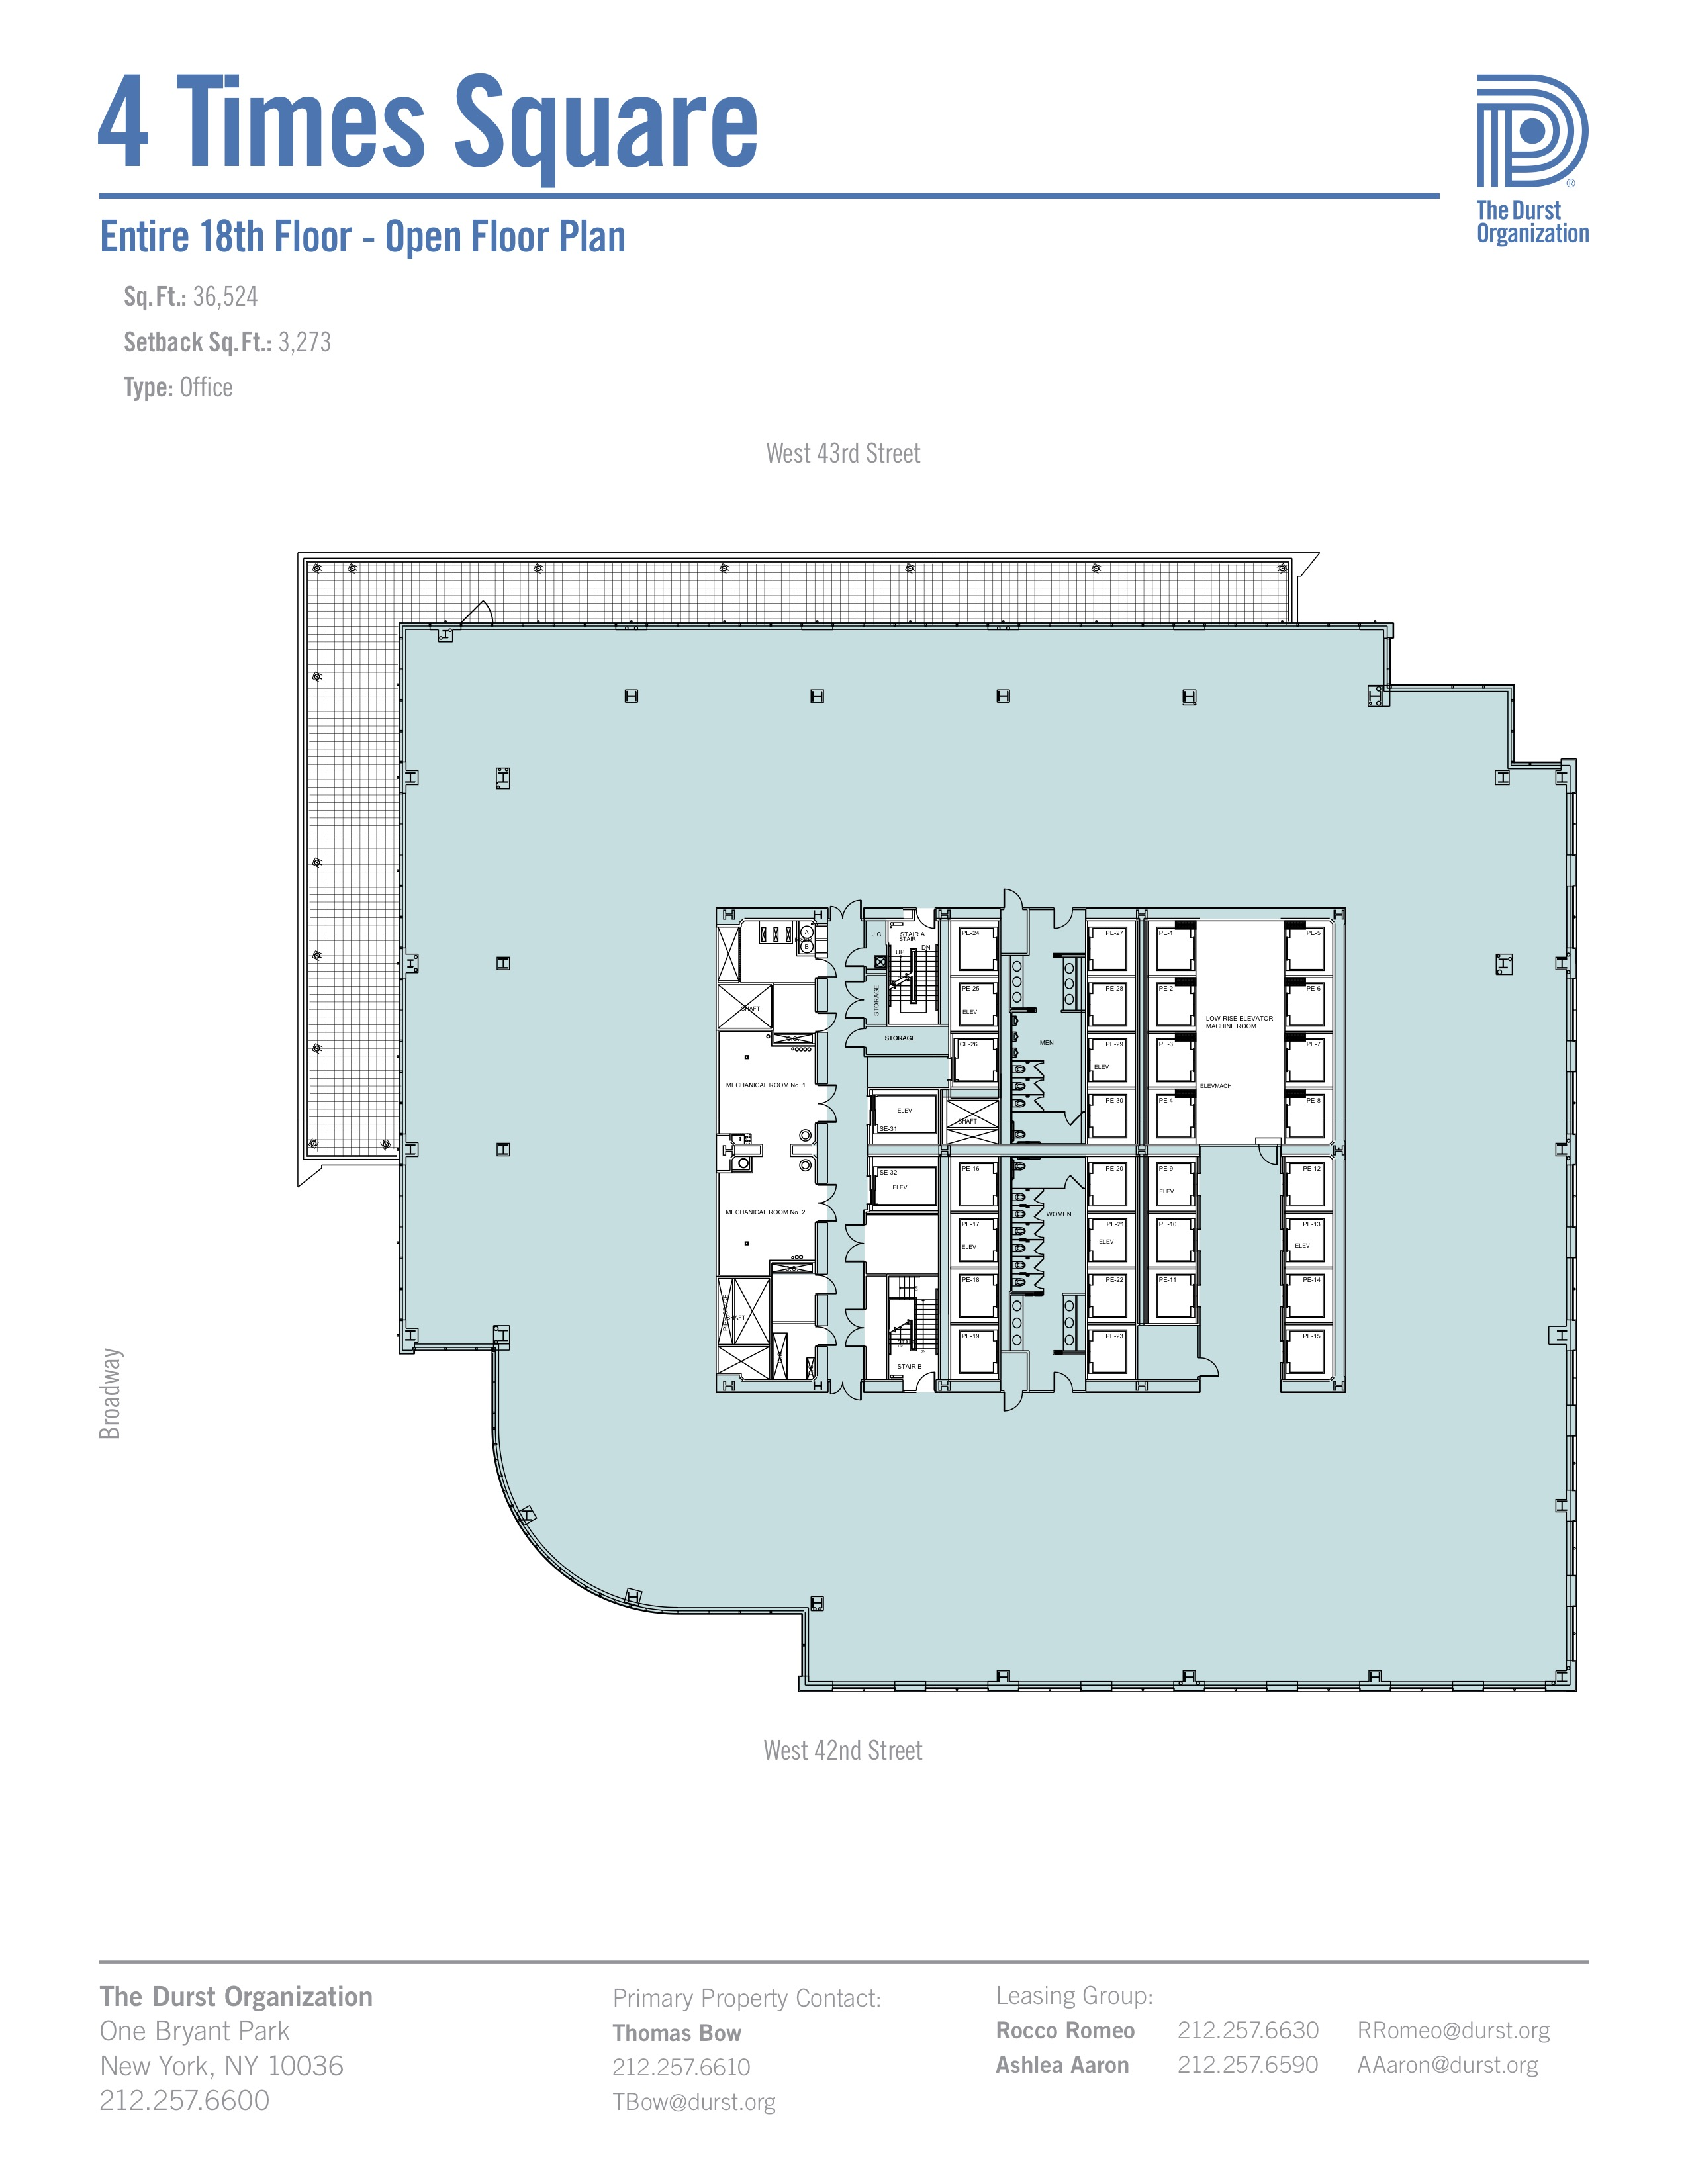 4 times square conde nast building floorplans new york city for Country plans com